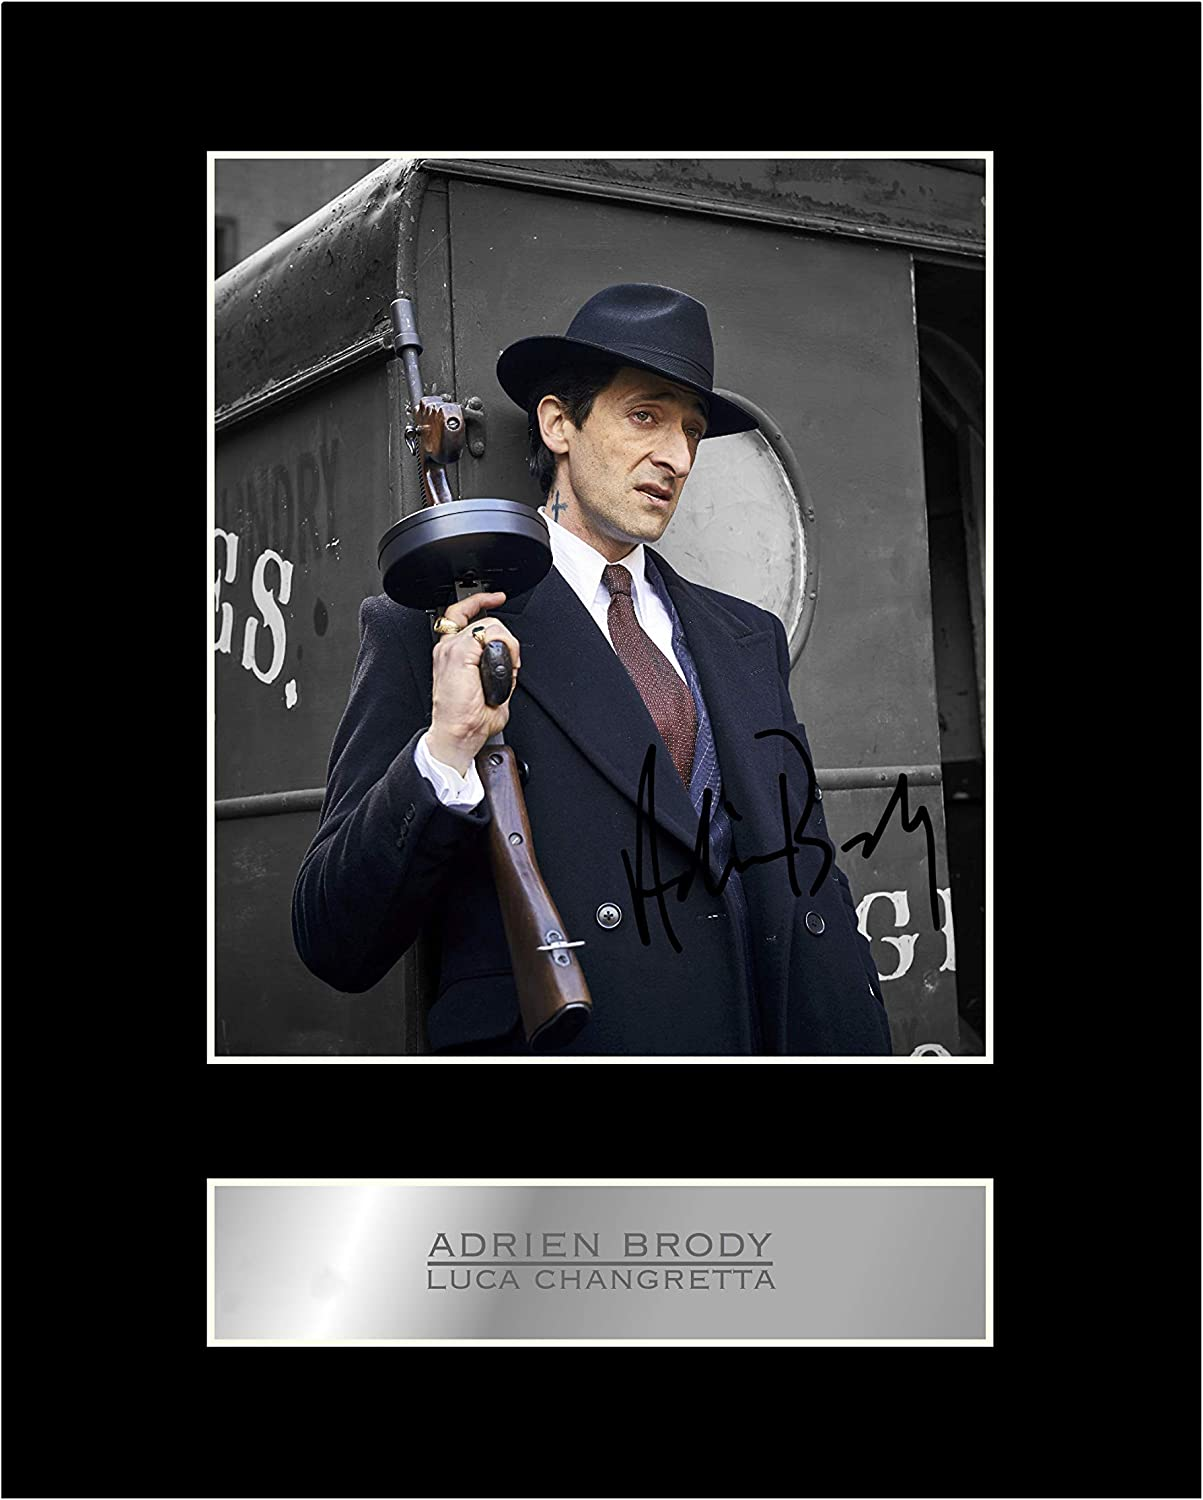 Adrien Brody Luca Changretta Signed Mounted Photo Display Peaky Blinders Autographed Gift Picture Print Amazon Co Uk Kitchen Home